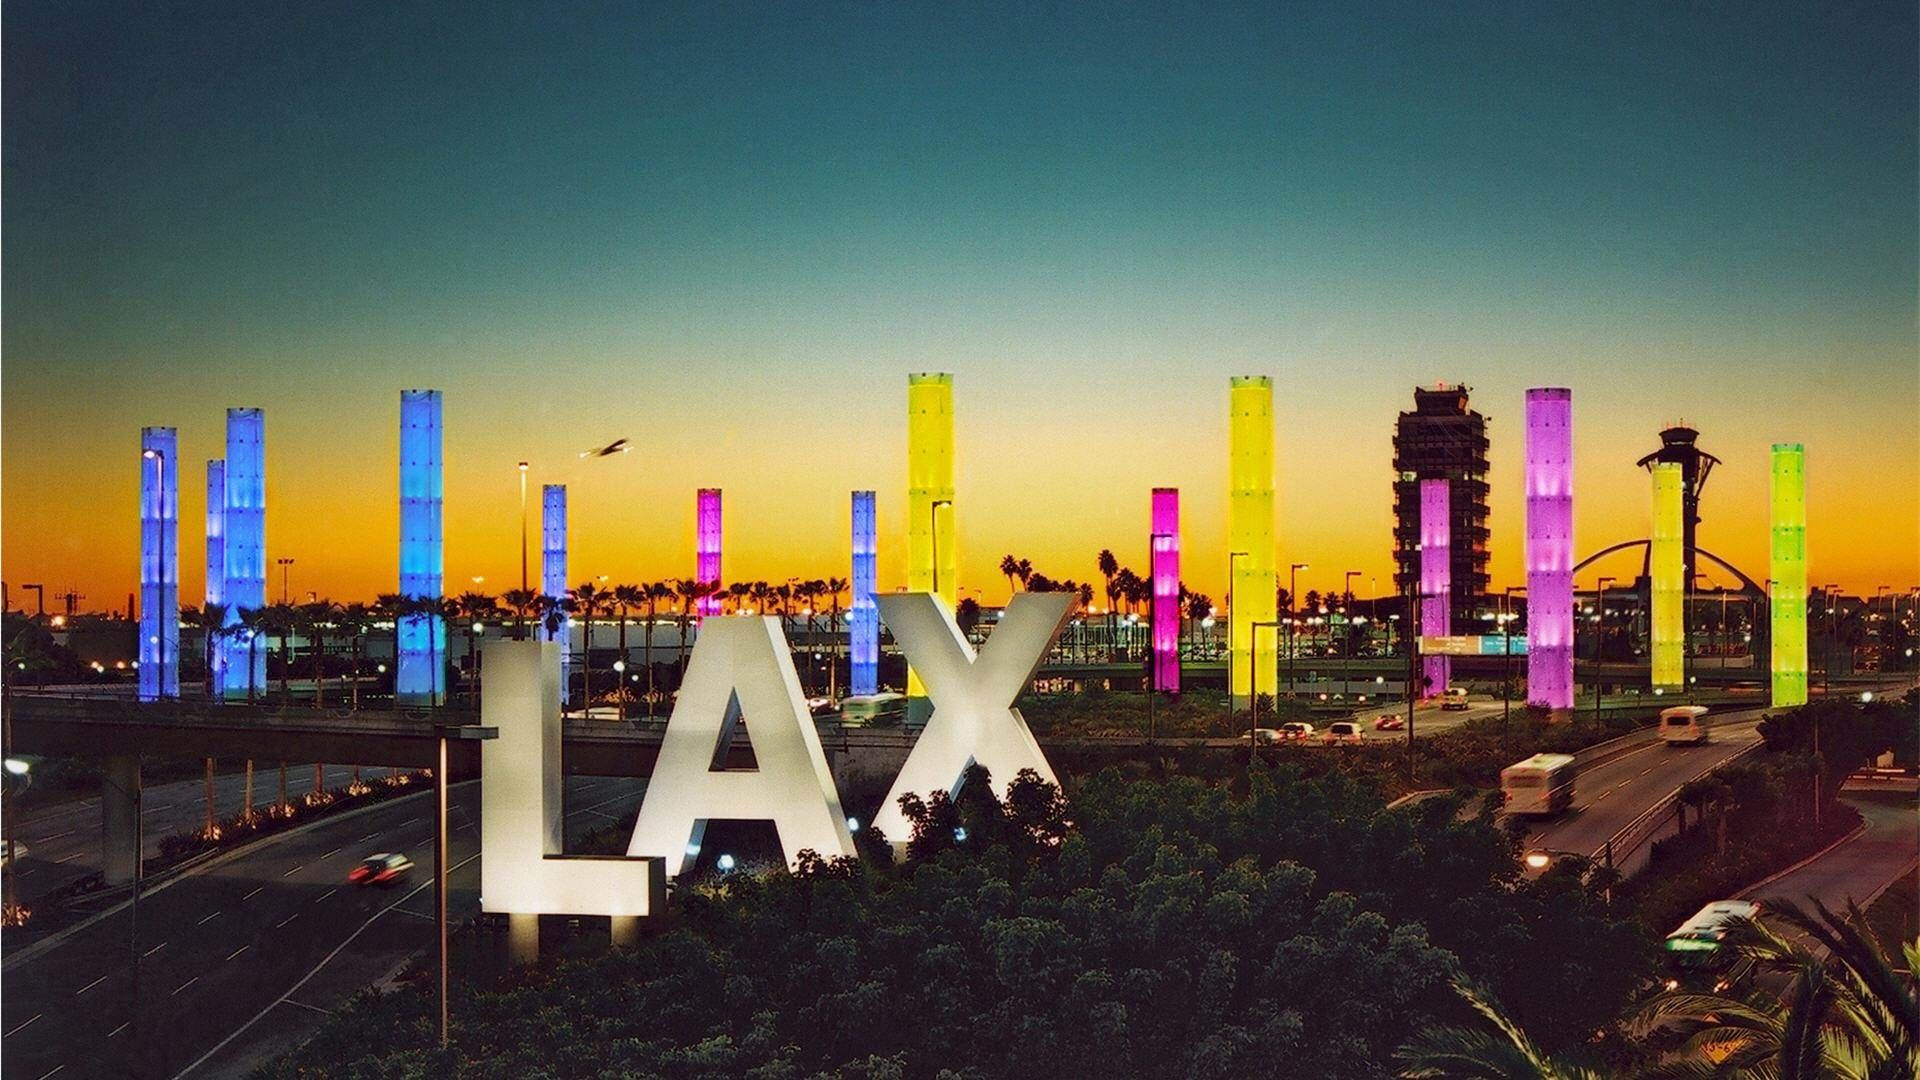 Los Angeles Wallpaper Hd Best Collection Of Los Angeles City